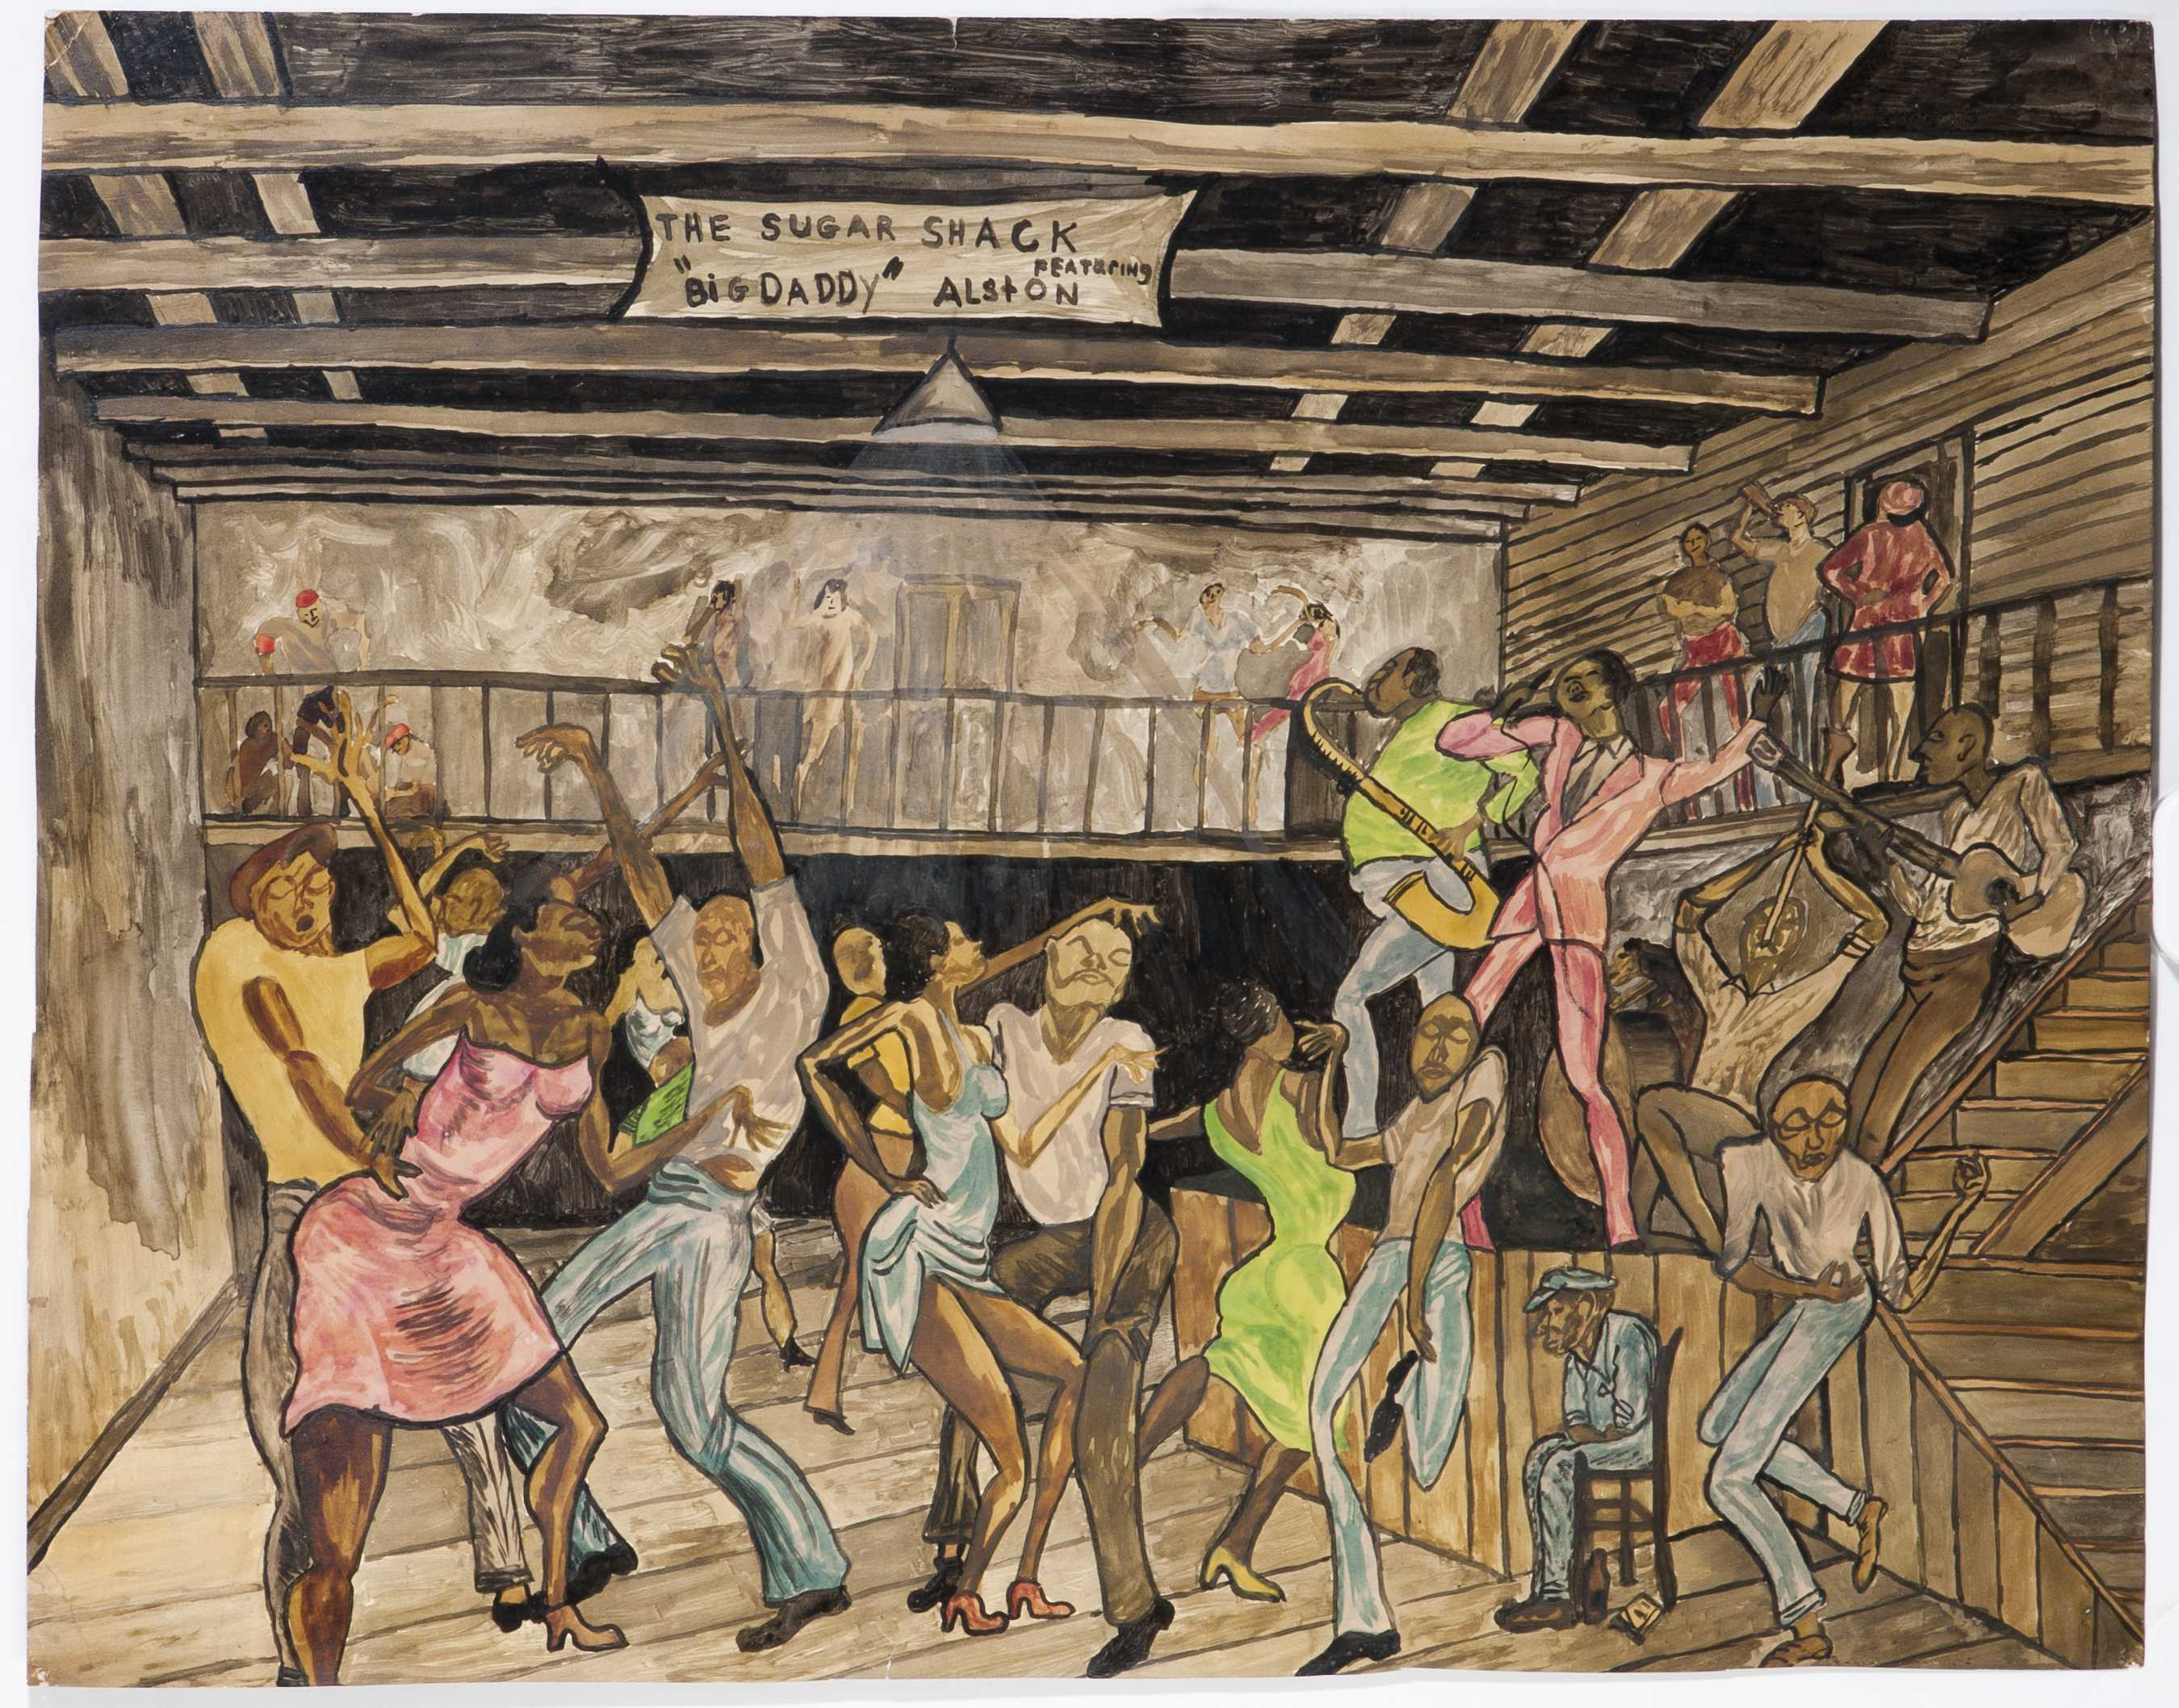 Attributed Ernie Barnes Watercolor Of The Sugar Shack